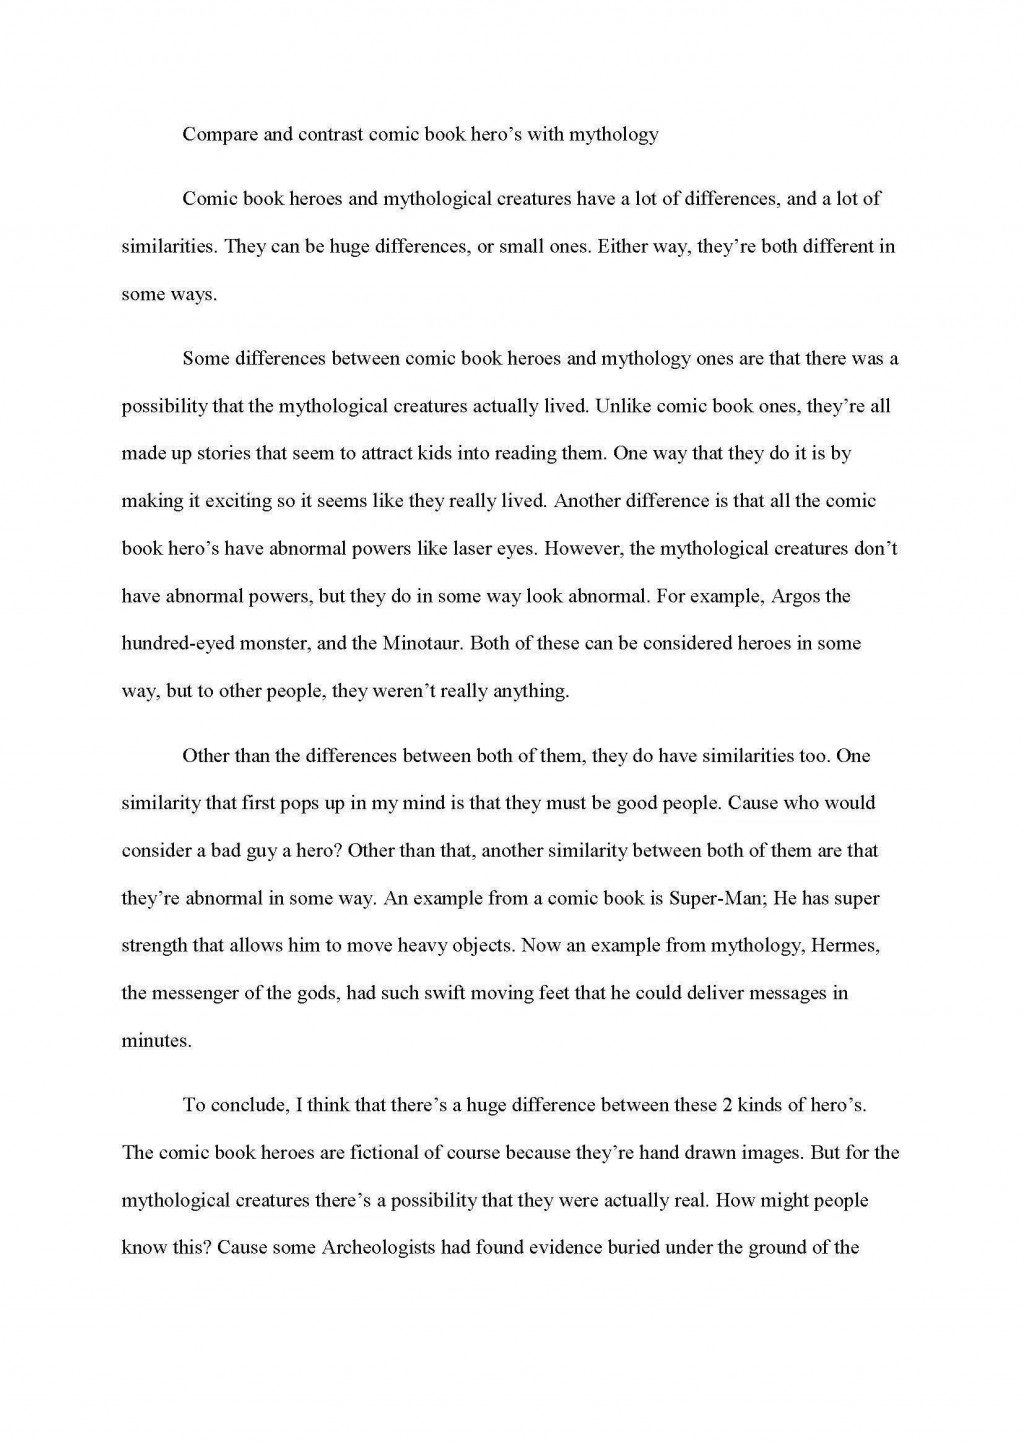 006 Excellent Compare And Contrast Essay Example College  For Topic OutlineLarge